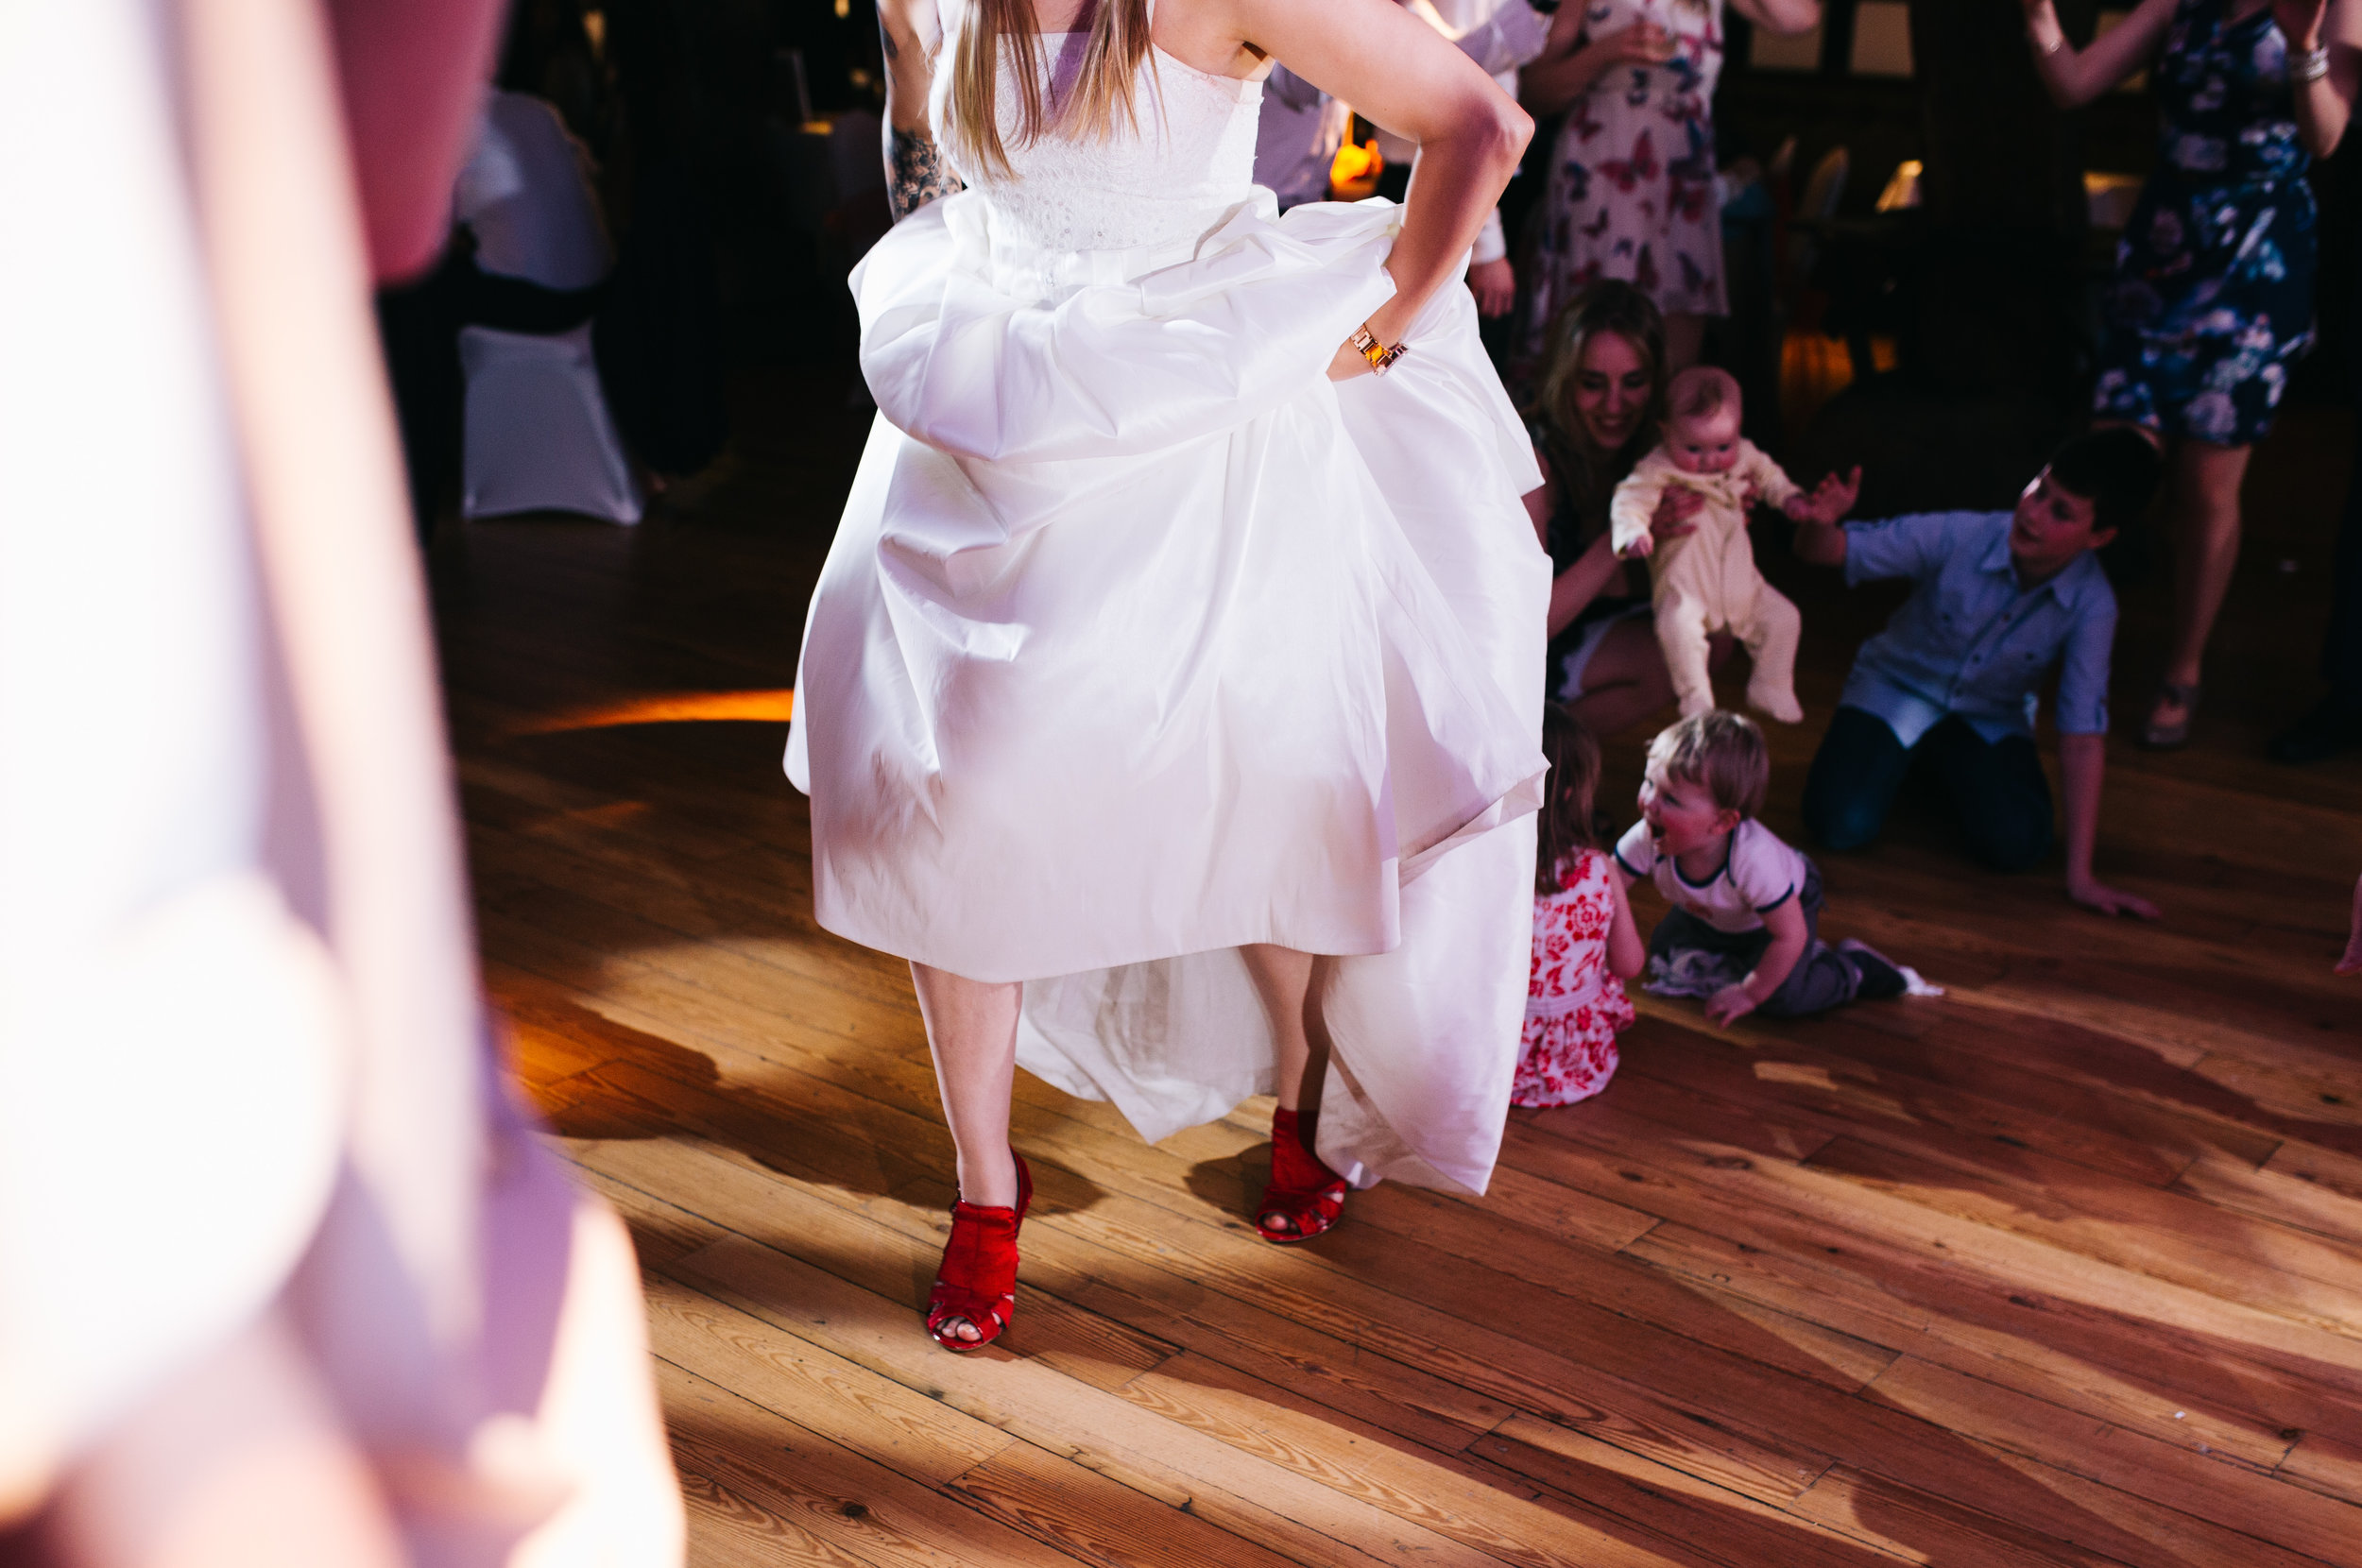 Rivington Barn wedding pictures - fun dancefloor